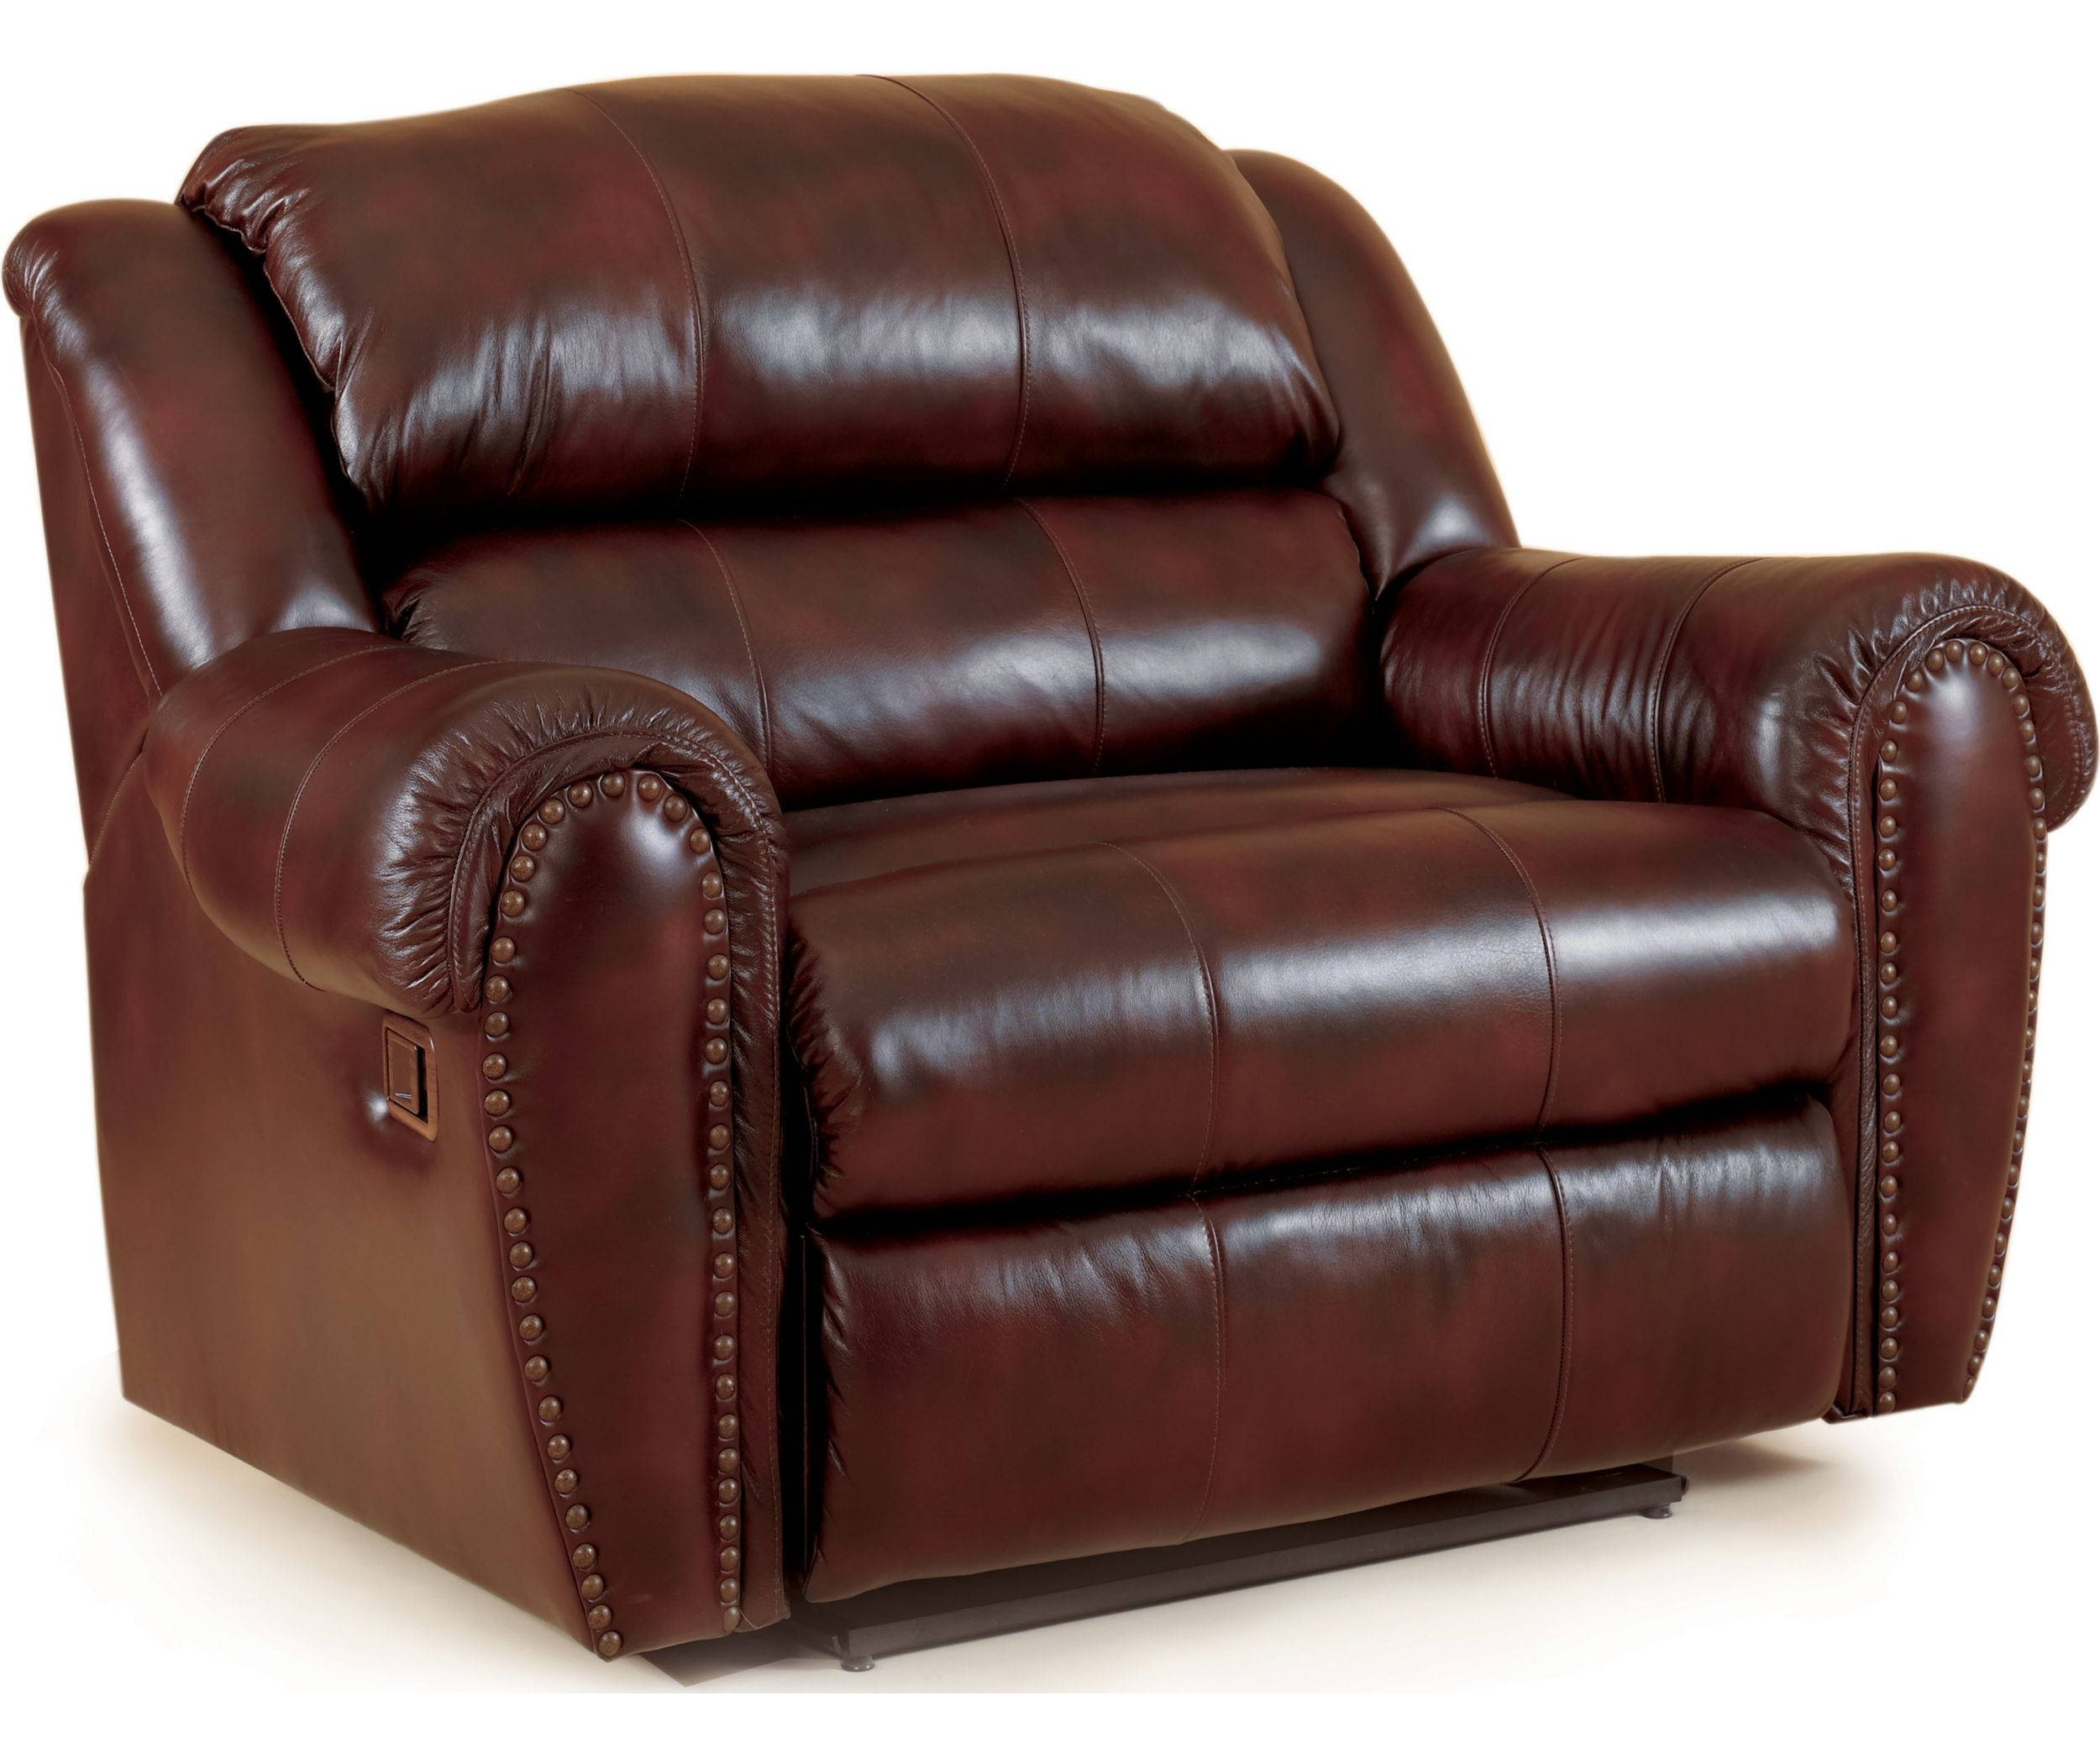 Brown Leather Snuggler Recliner